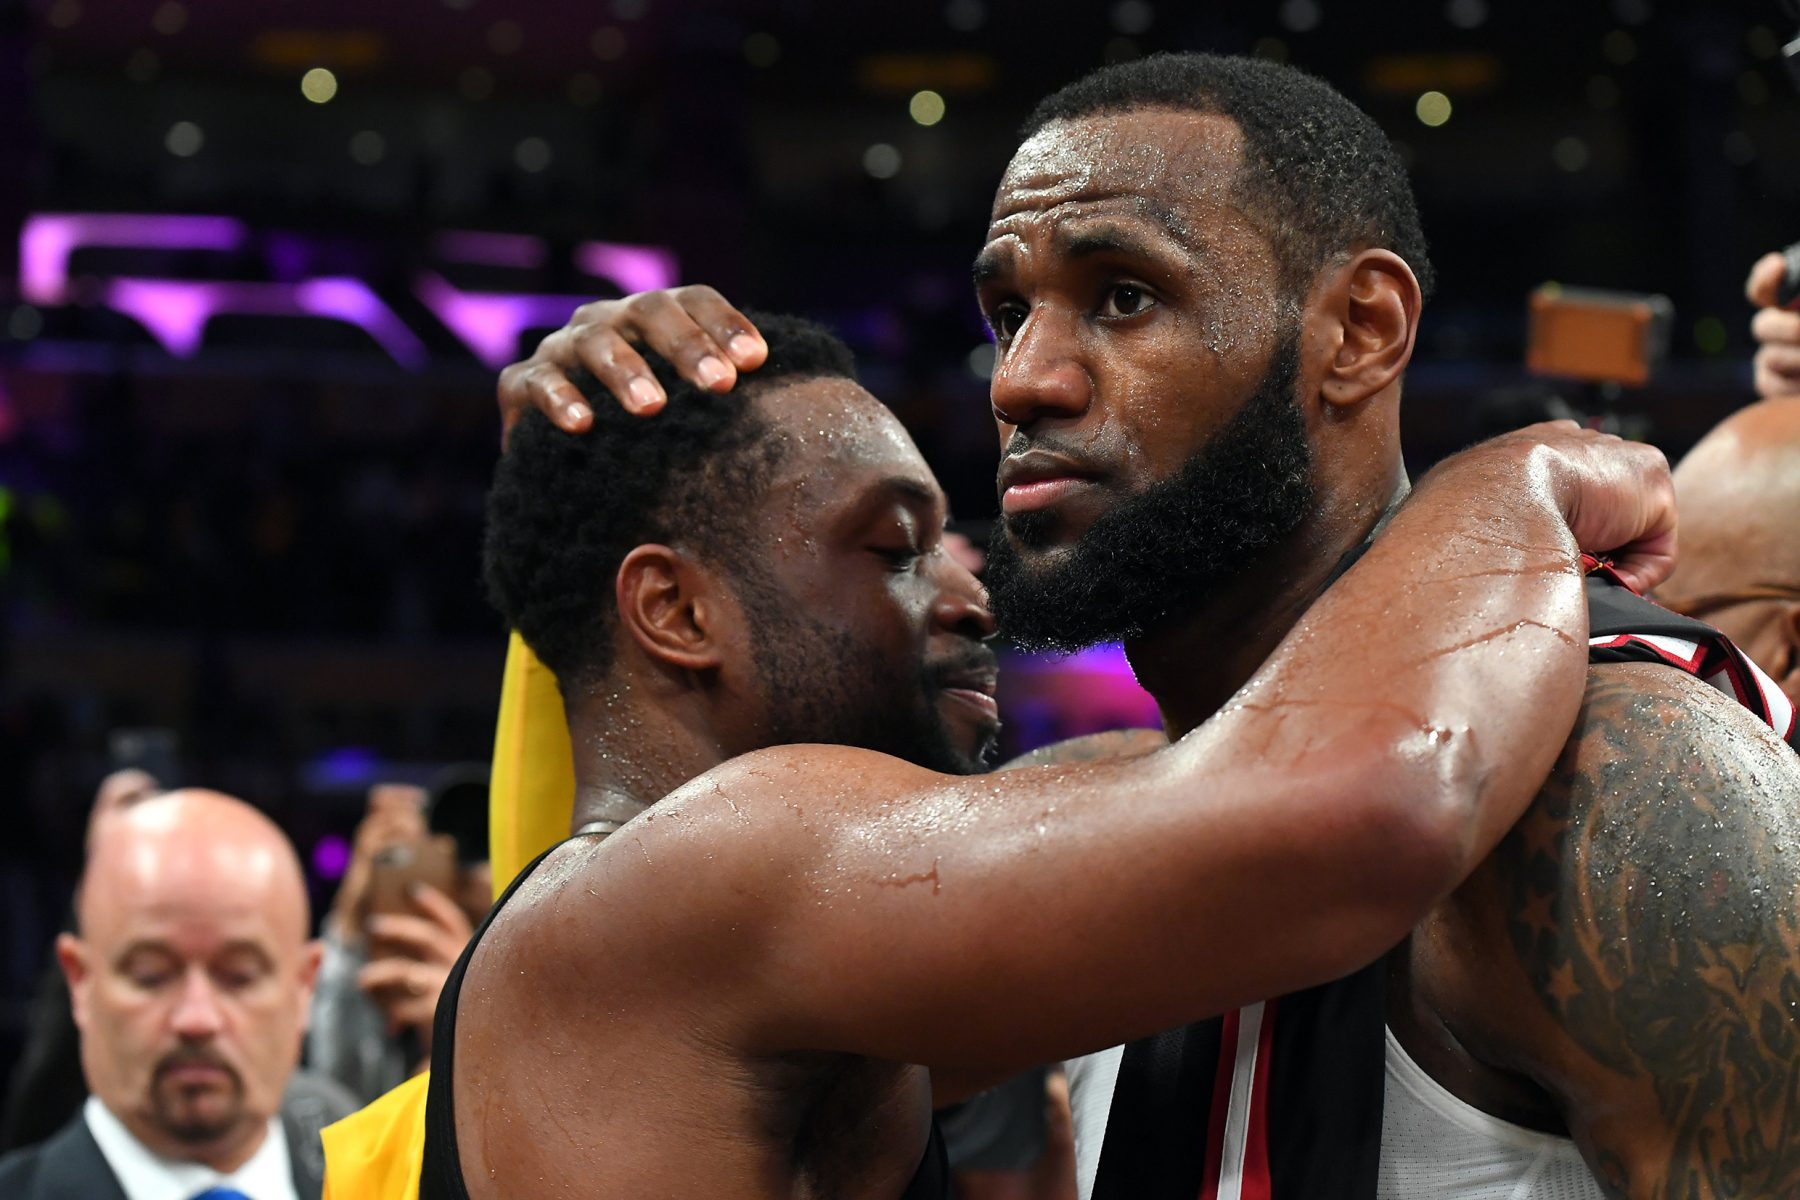 Miami Heat Los Angeles Lakers LeBron James Dwyane Wade